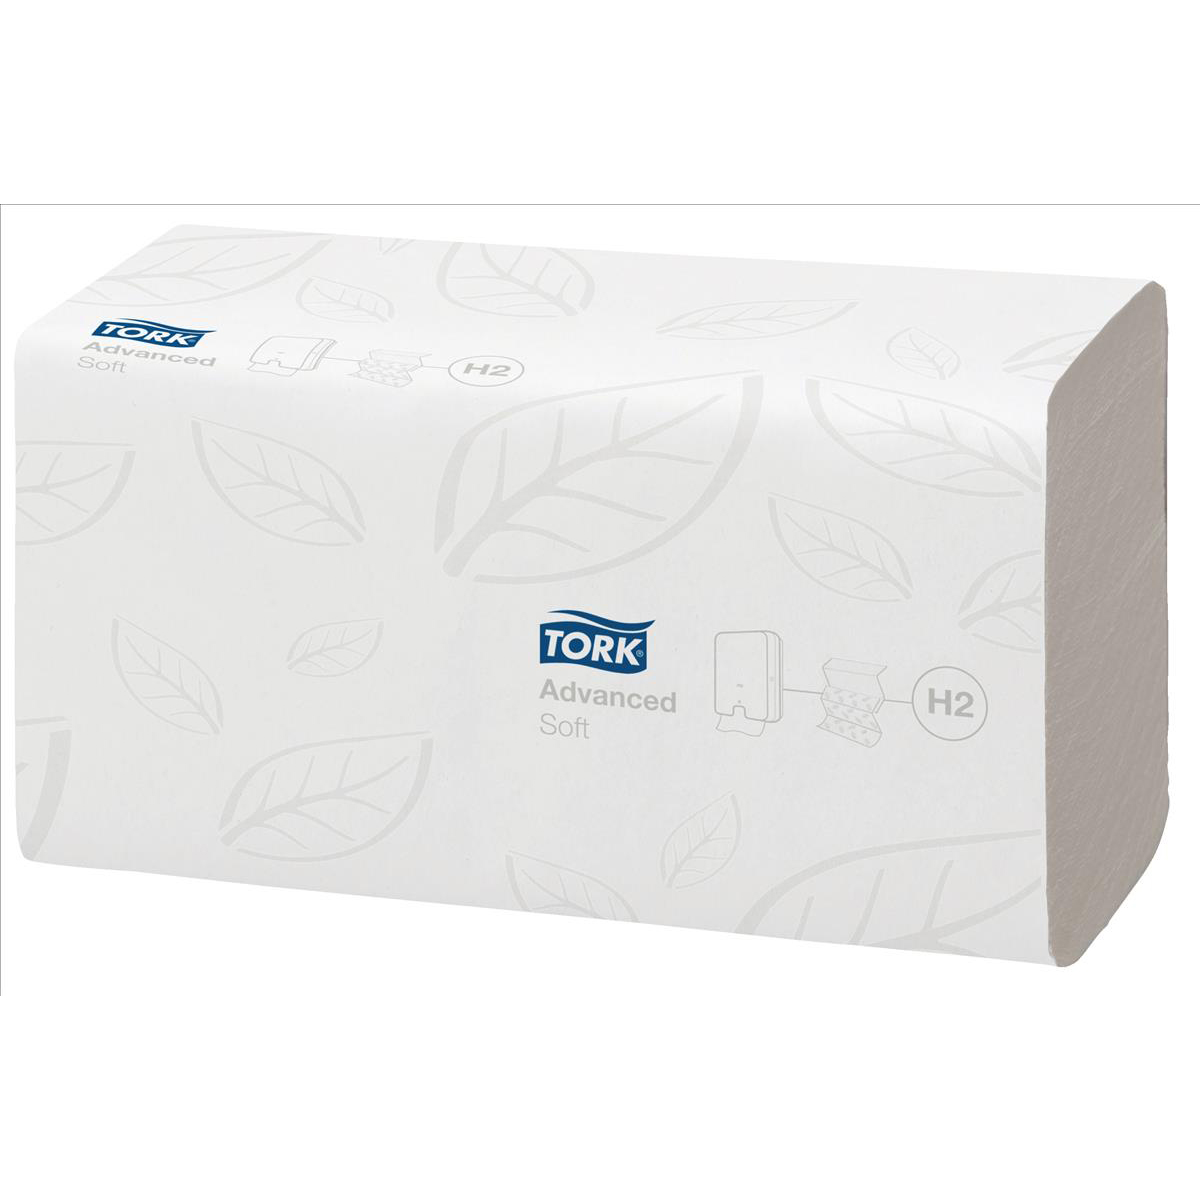 Tork Xpress Advanced Soft Hand Towel Multifold 2 Ply 180 Sheets Per Sleeve White Ref 120289 Pack 21